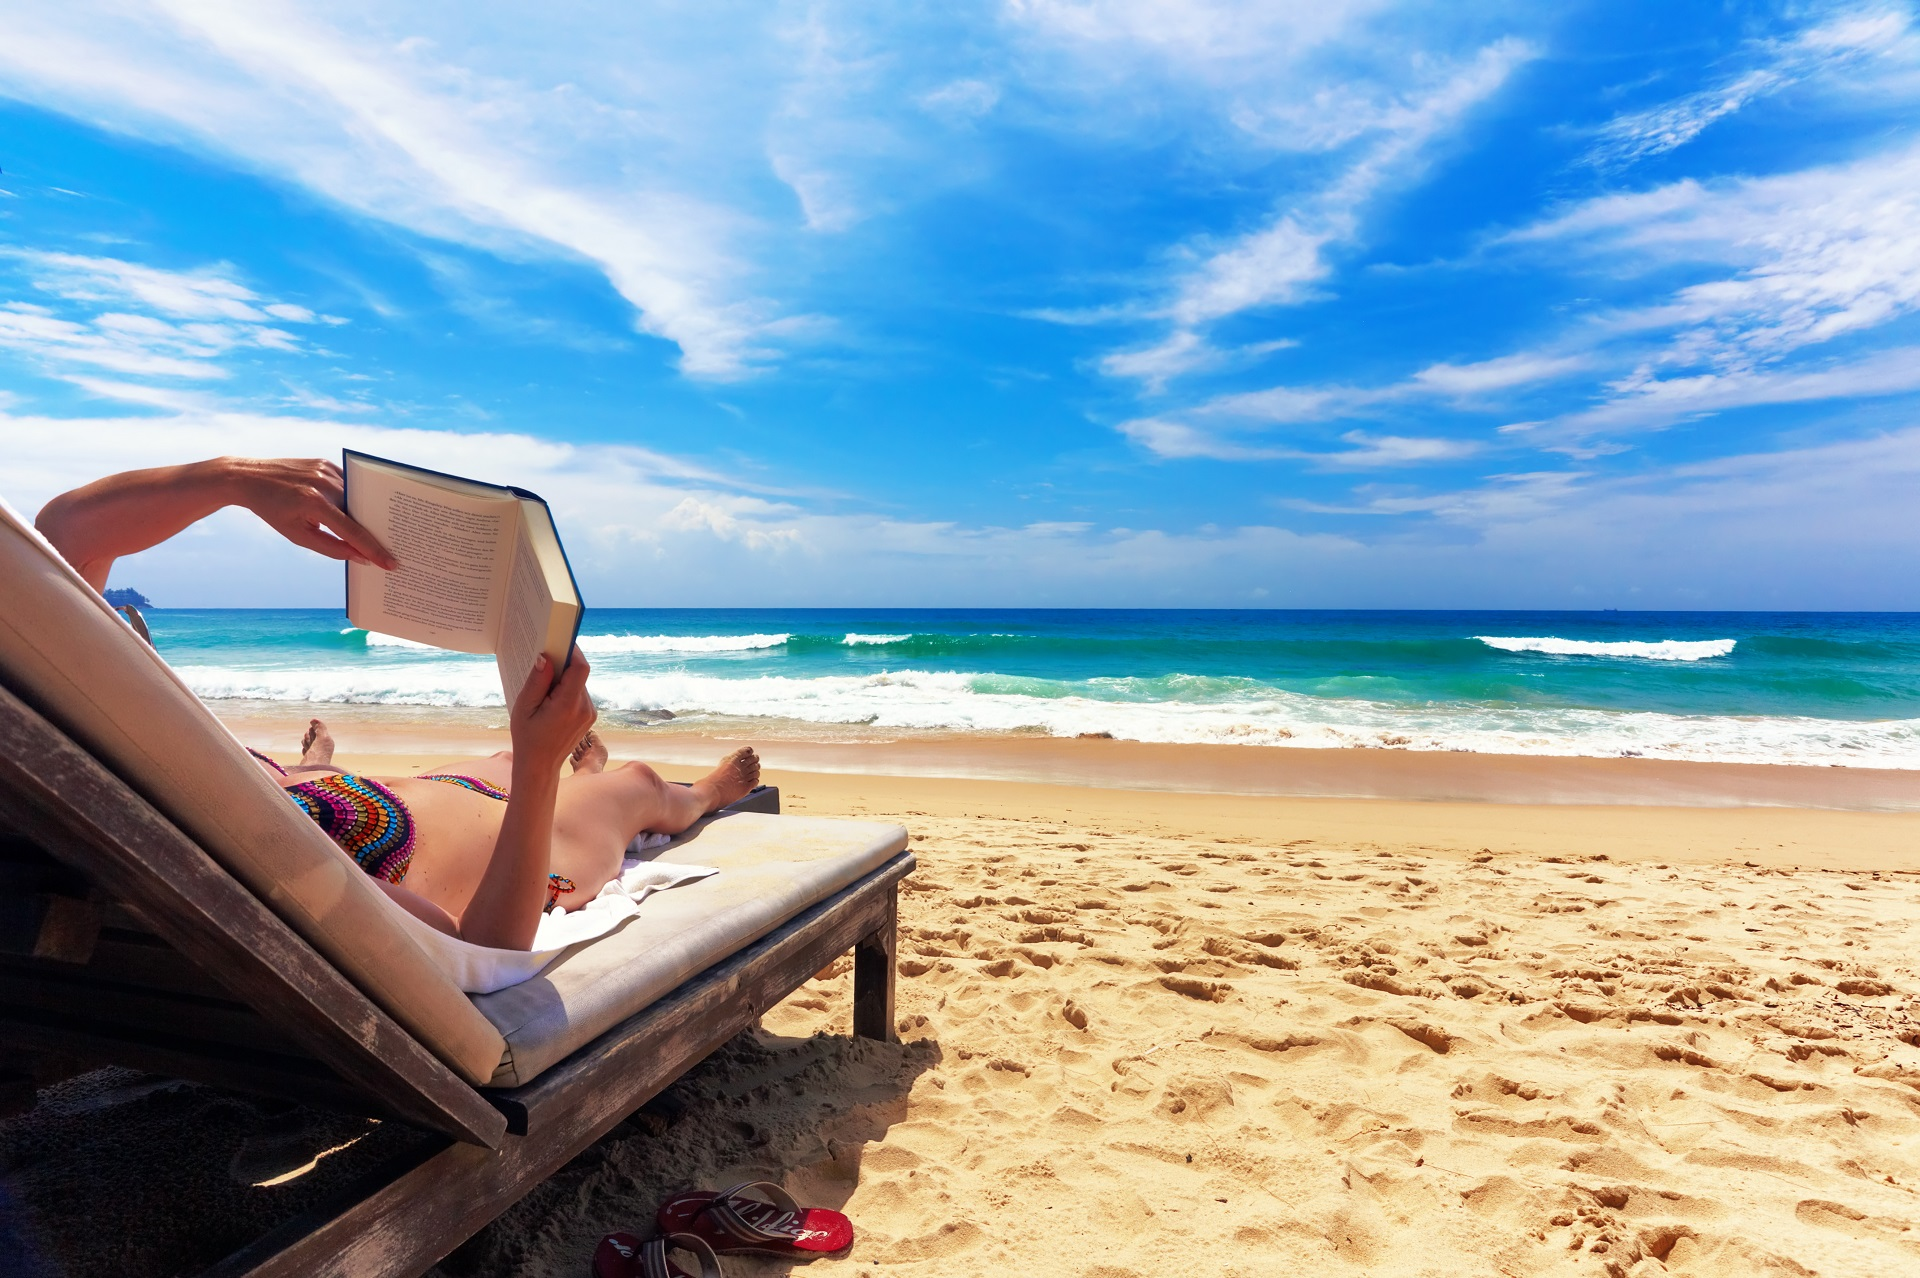 How to tan properly, When to tan properly, How should children tan properly, How long to tan,